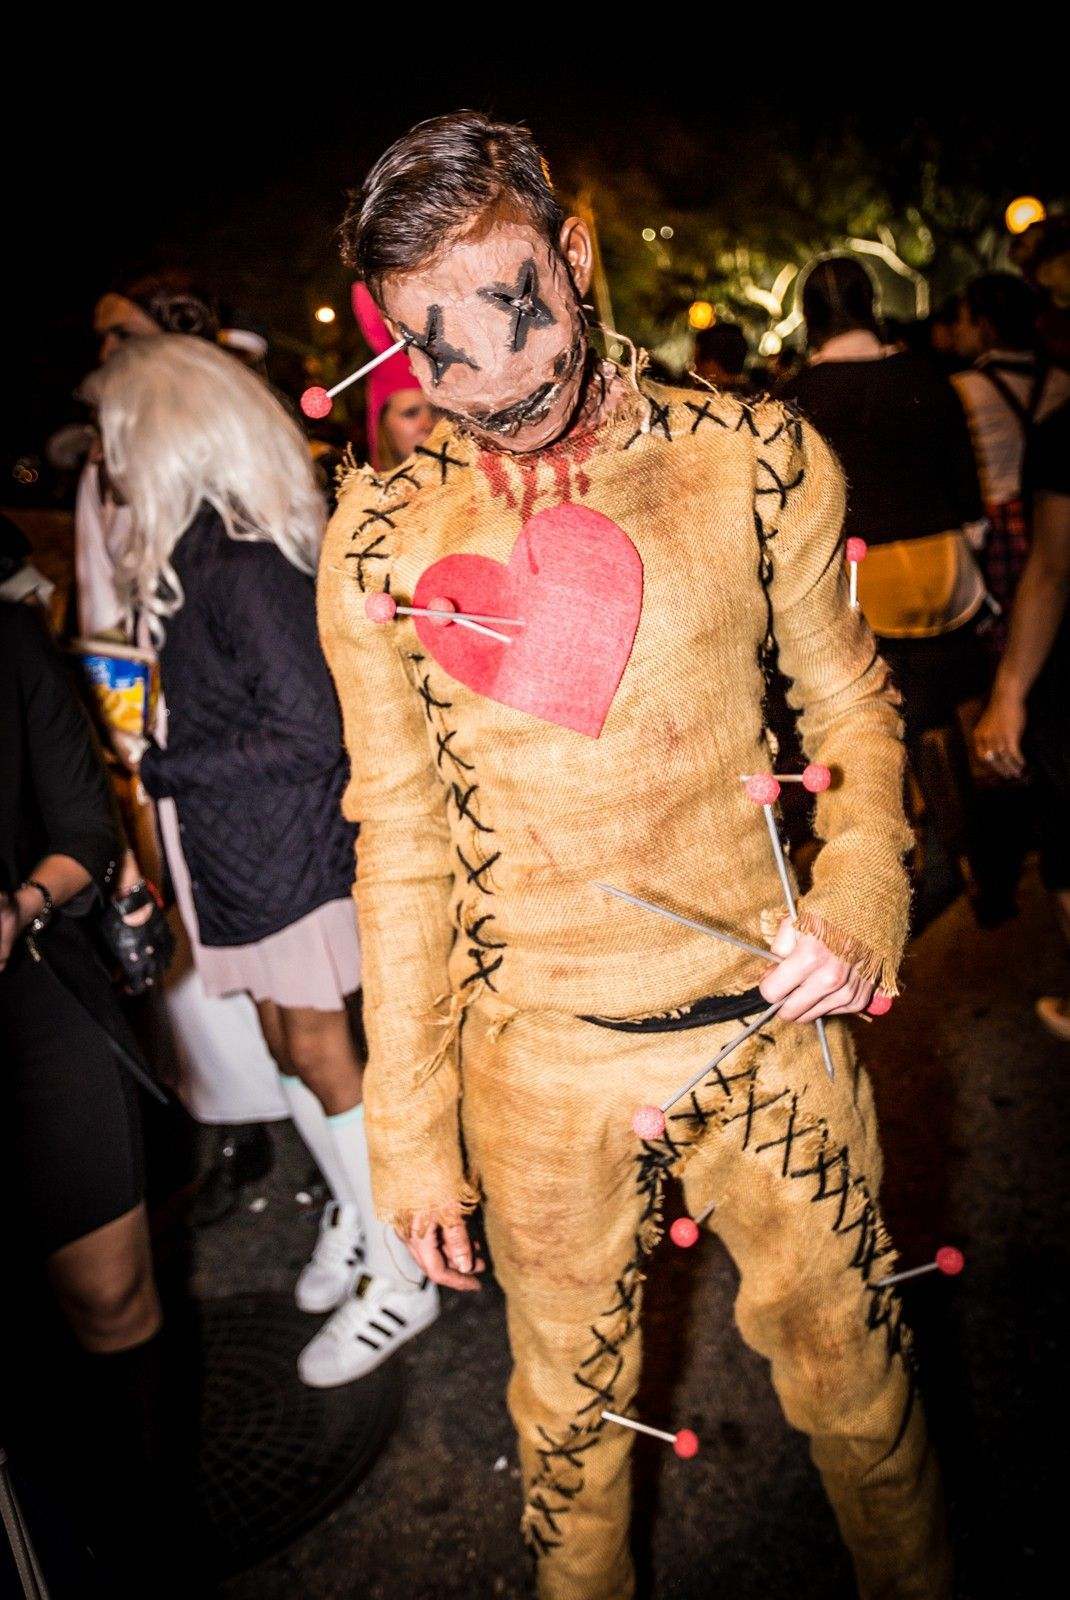 Woah, crazy voodoo doll! :: The best costumes spotted at the West Hollywood Halloween Carvaval #halloween #halloweencostumesmen